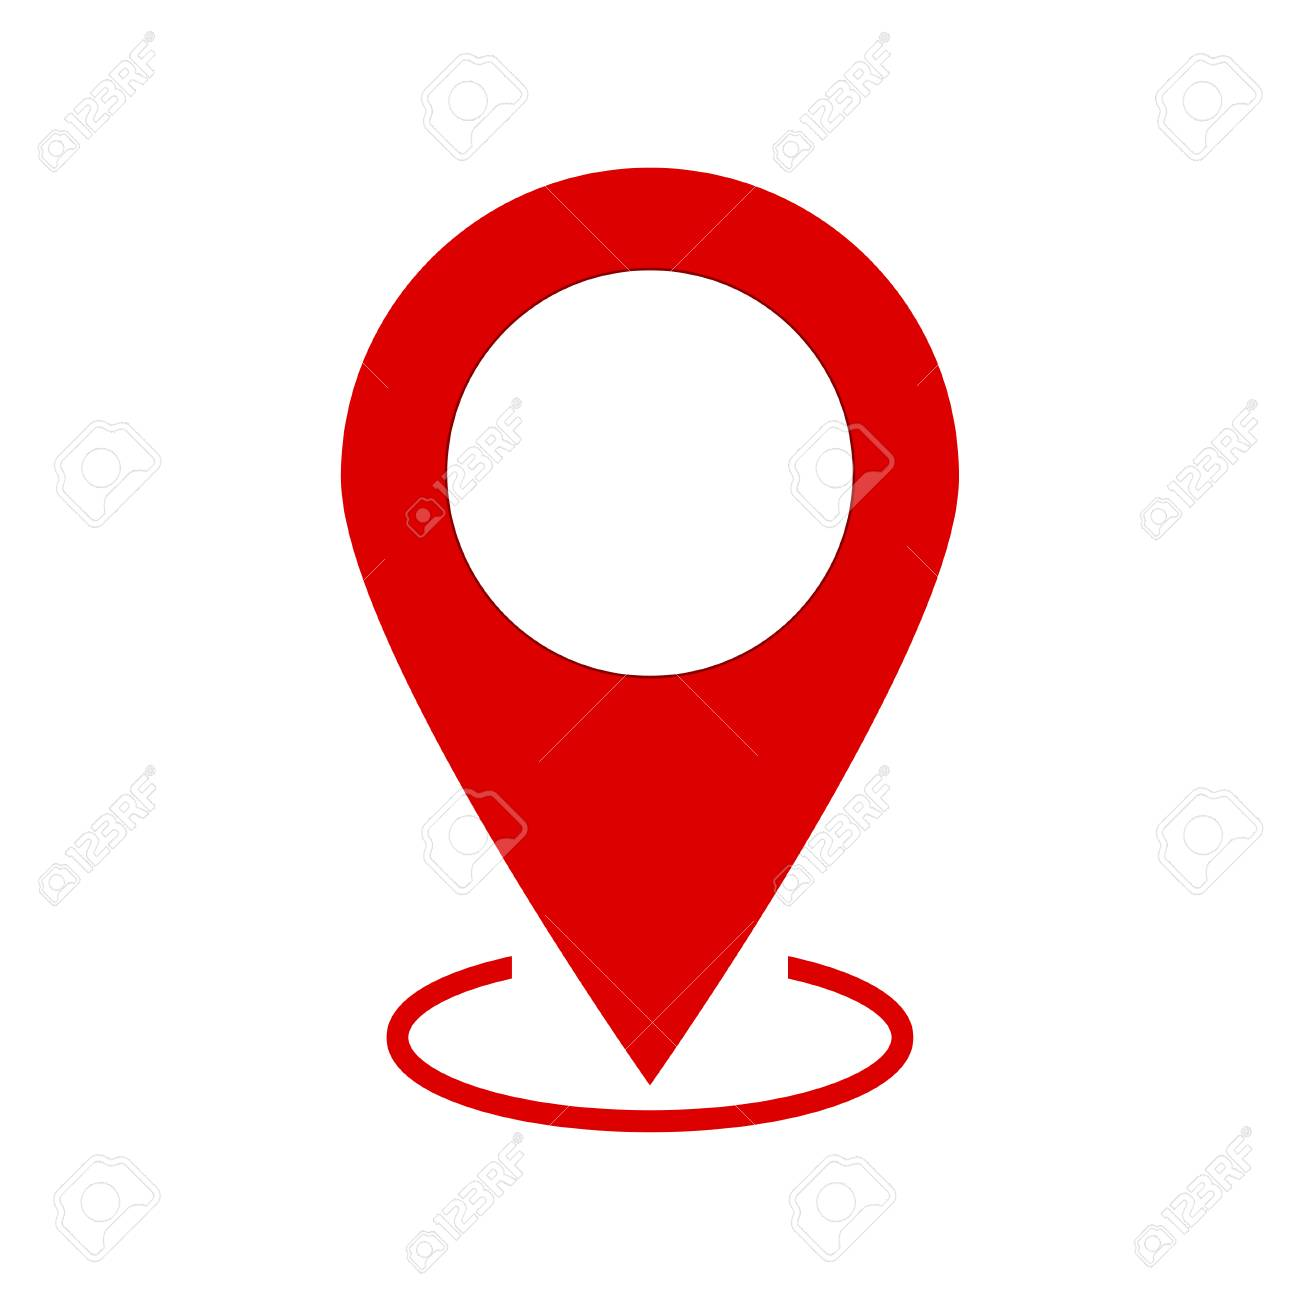 Location icon, gps marker symbol, map pin icon vector on google maps walking icon, map center icon, map marker pin icon, google maps bus icon, google map icon police, google map icon symbols, flag map pin icon, google maps icon iphone, google map man icon, google scissors icon, google home icon, apple map pin icon, google trash icon, google map share icon, google map icon maker, google map address icon, green map marker icon, google map filter icon, google map icon green, google map flag icon,